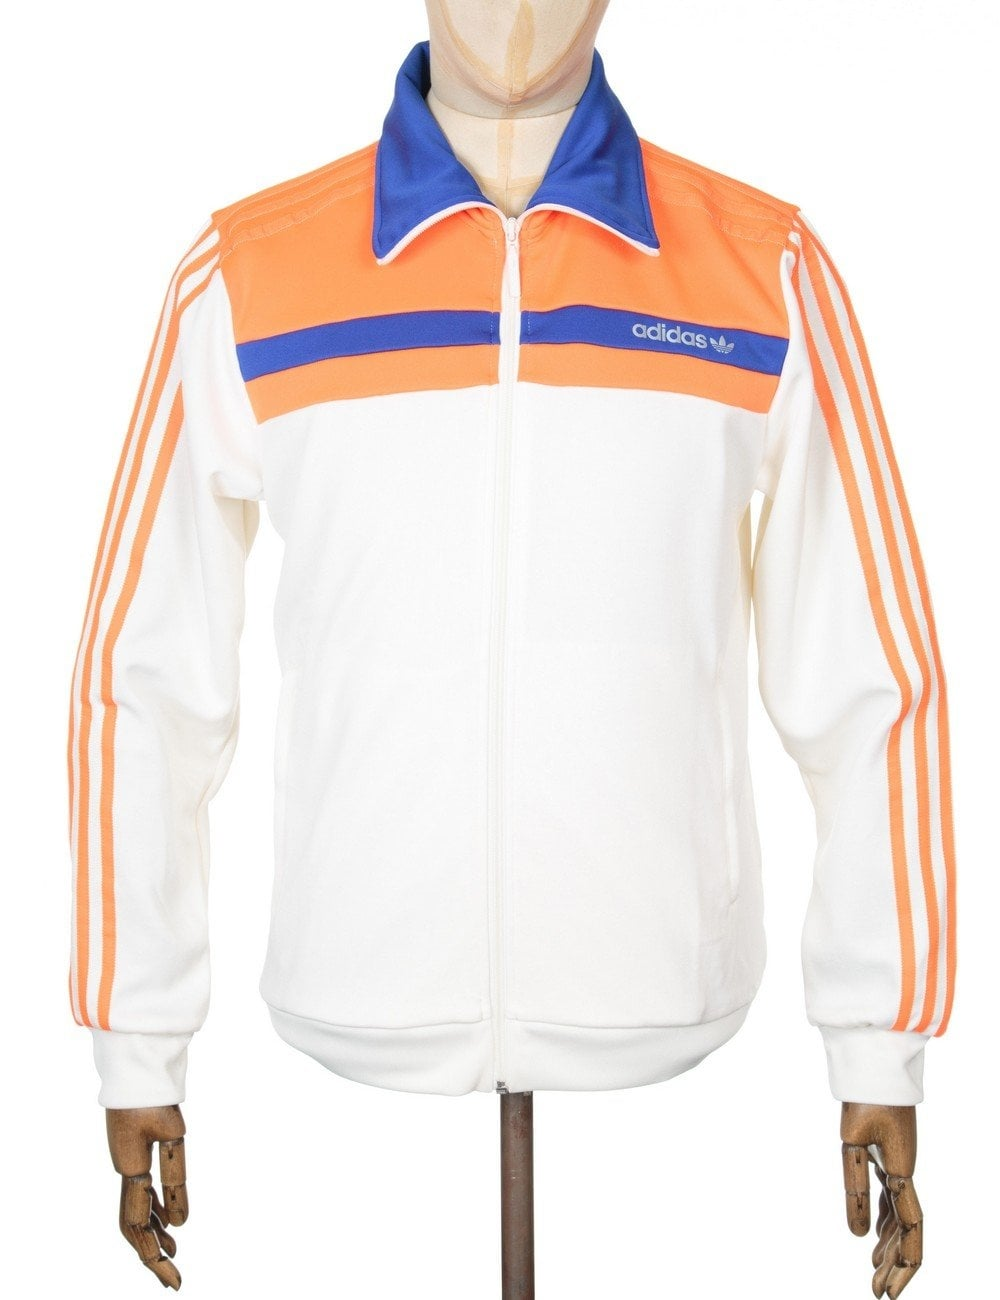 new style 00955 6b914 Adidas Originals Nite Jogger OG Track Top - Chalk White